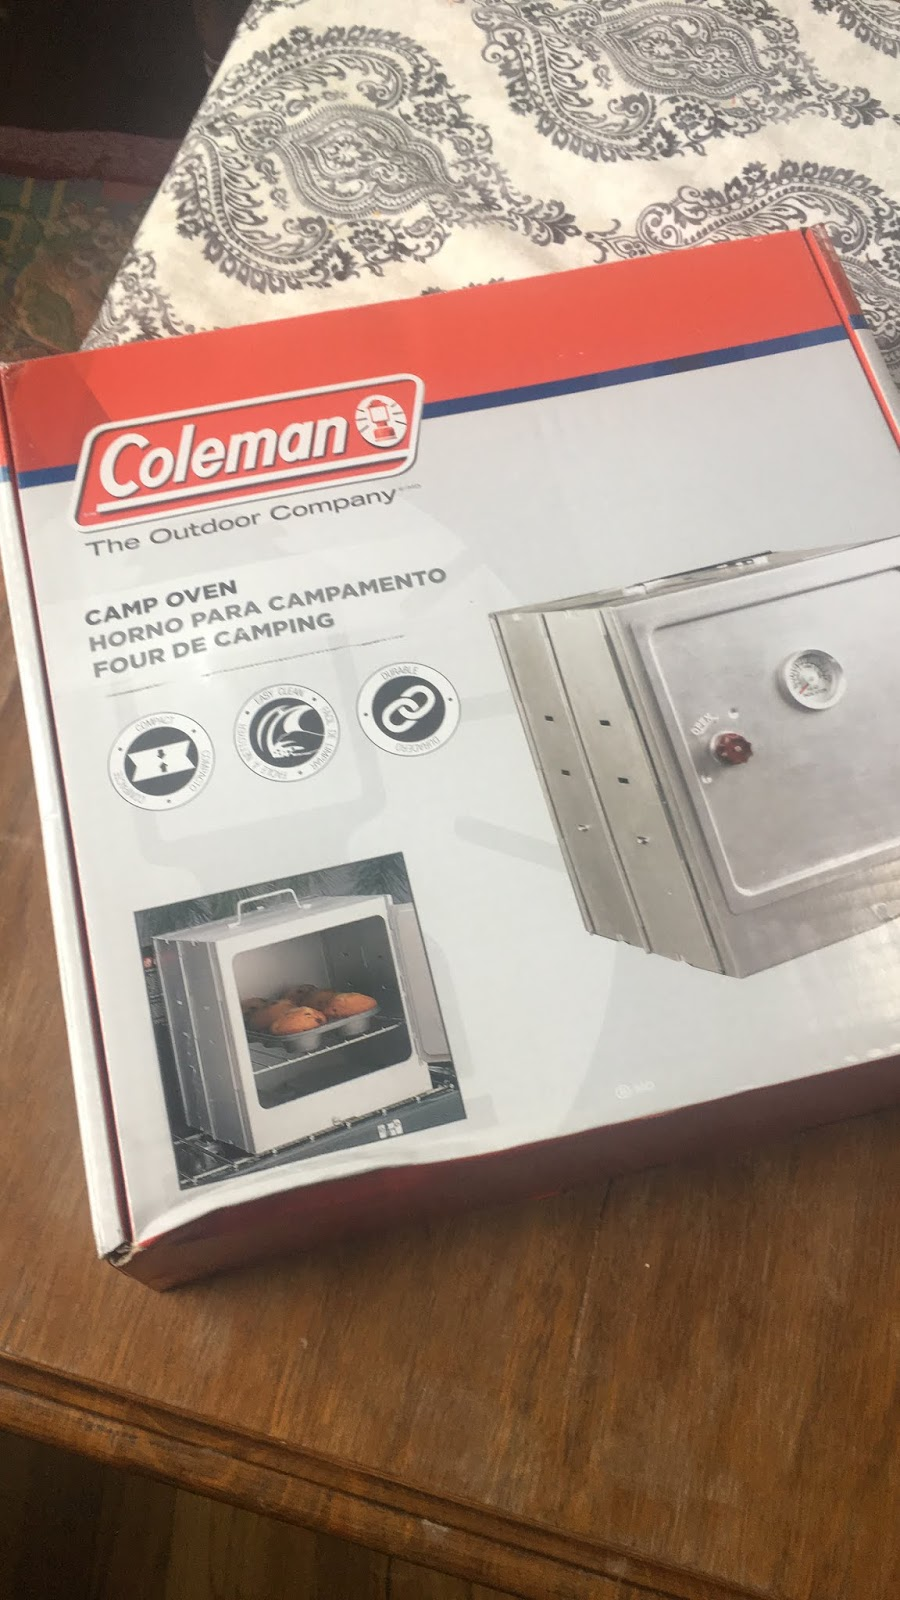 The Southern Glamper: Coleman Camp Oven Review